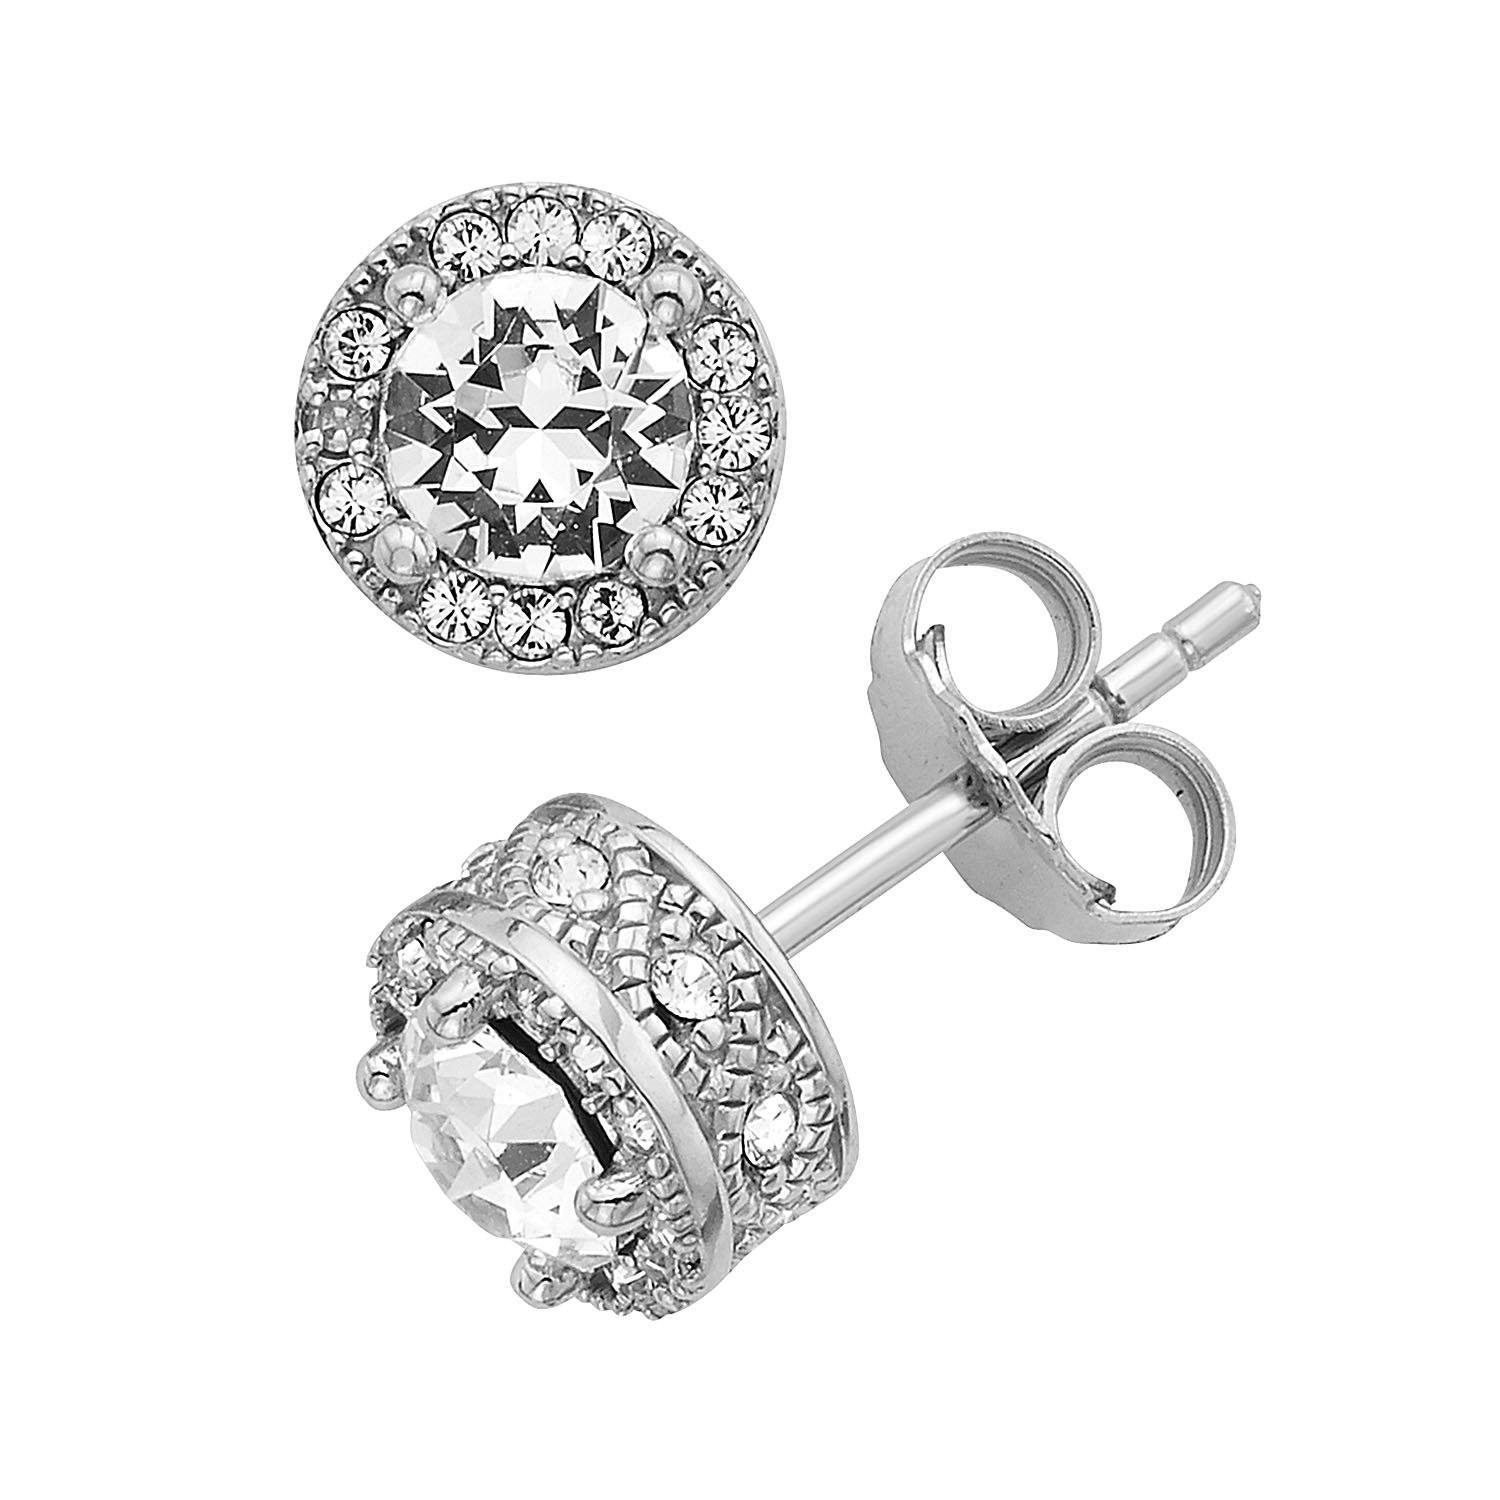 Halo & Cluster Stud Earrings – Netaya